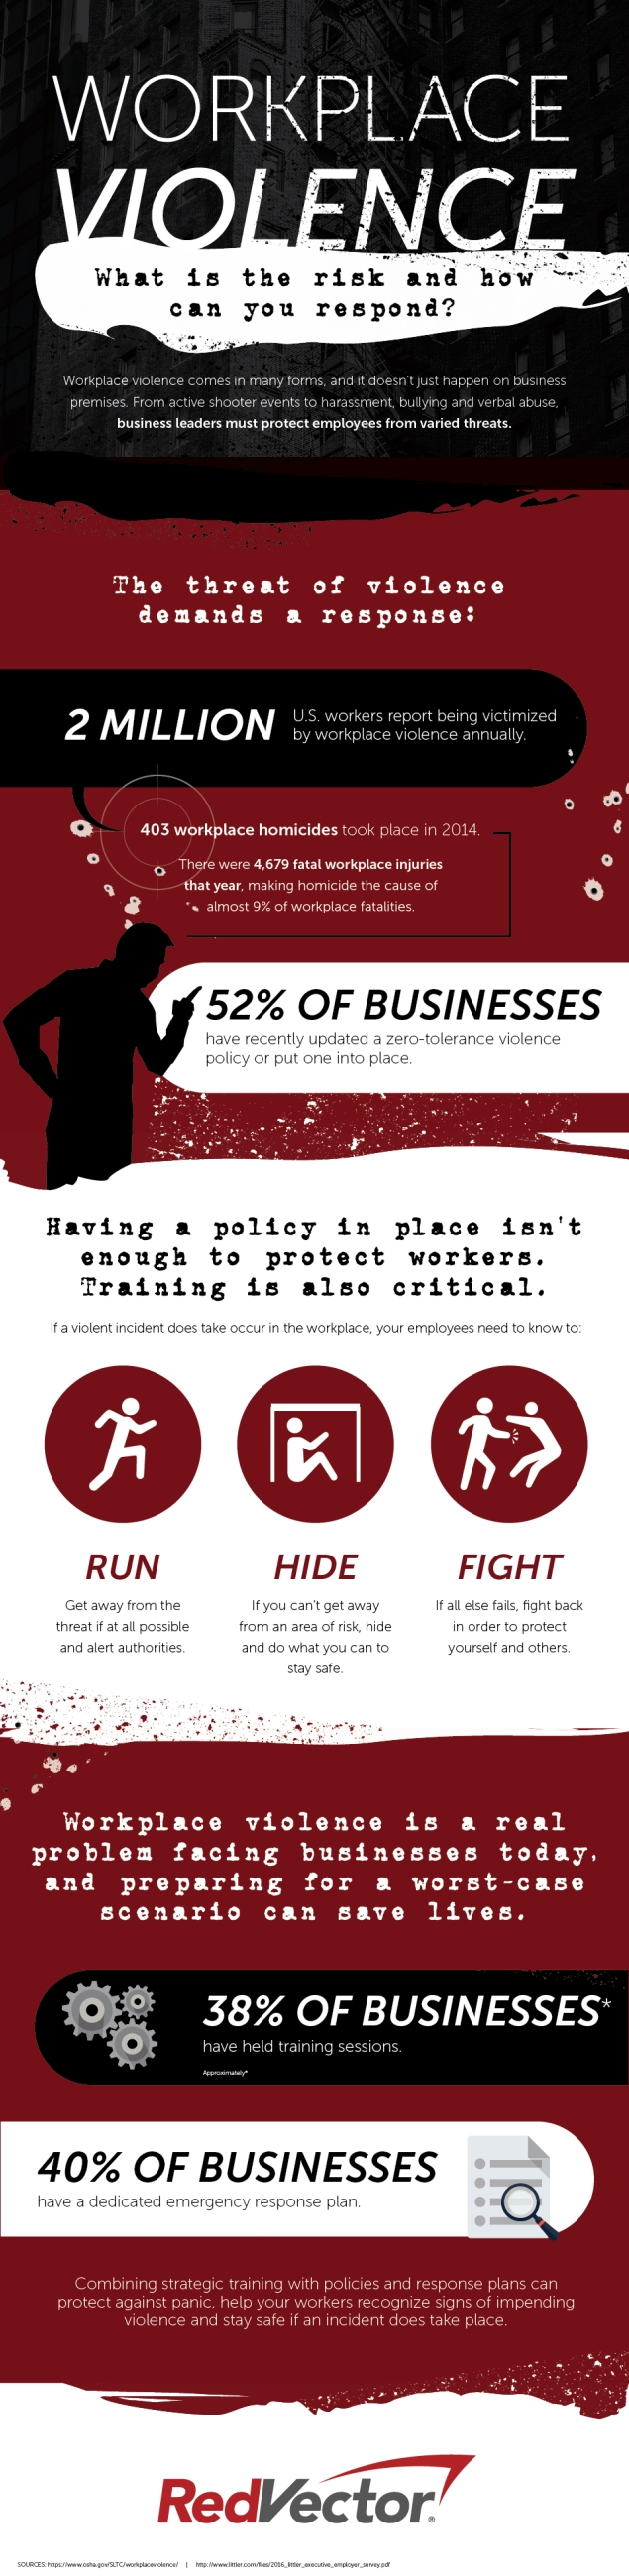 Protecting Against Workplace Violence